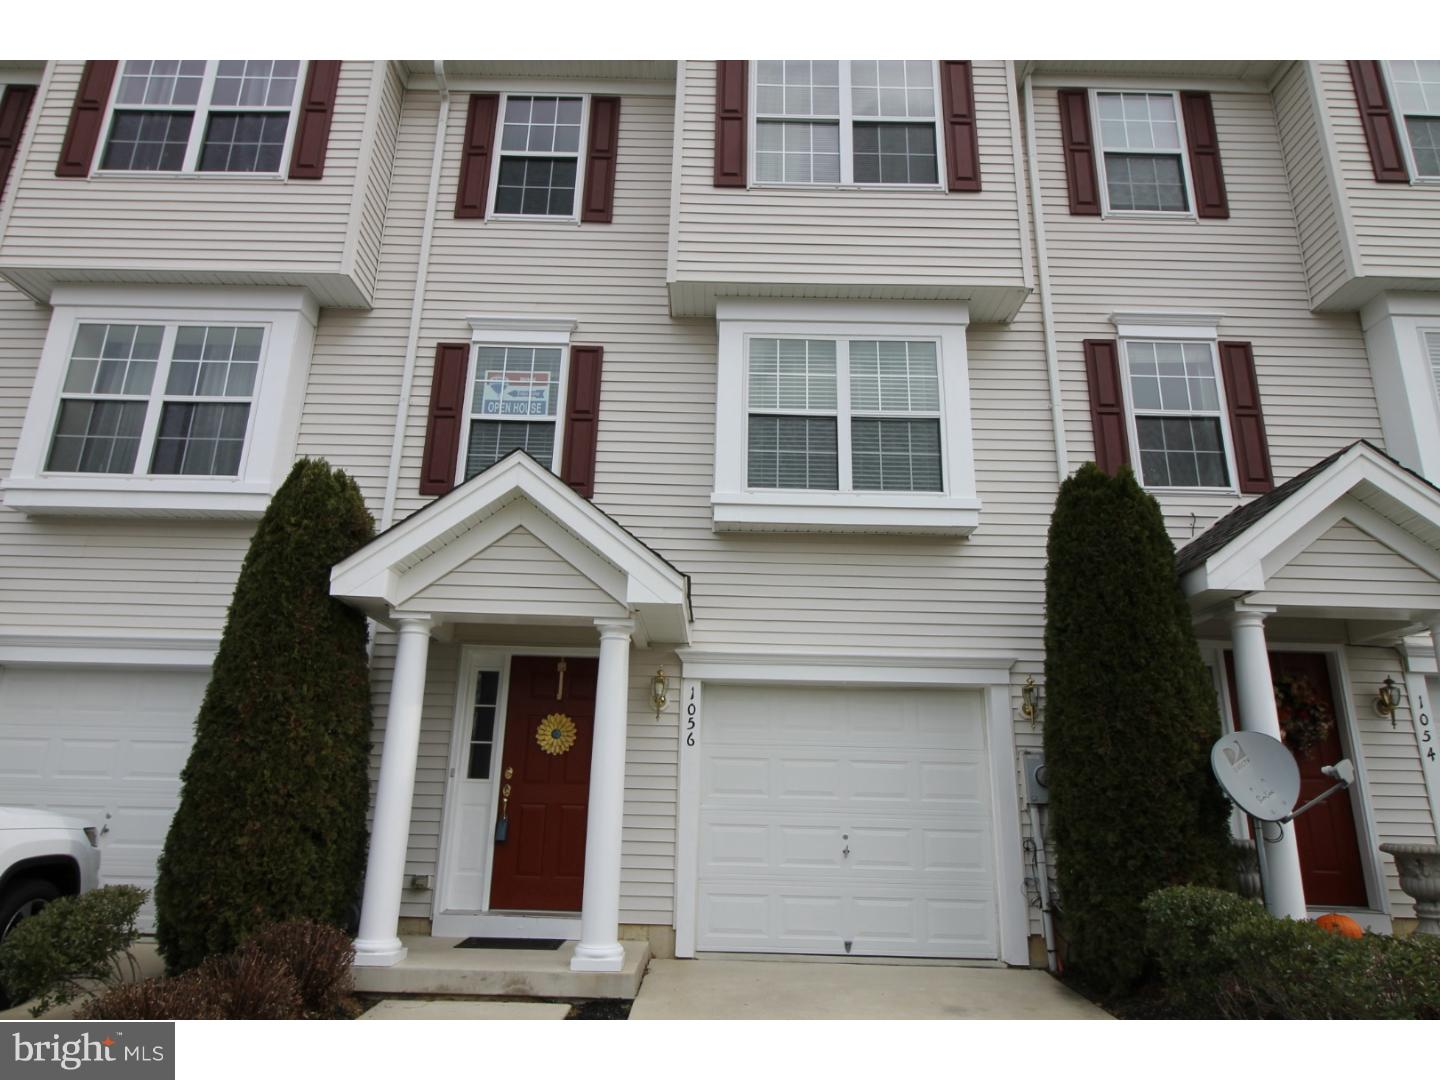 1056 BUCKINGHAM DRIVE, THOROFARE, NJ 08086